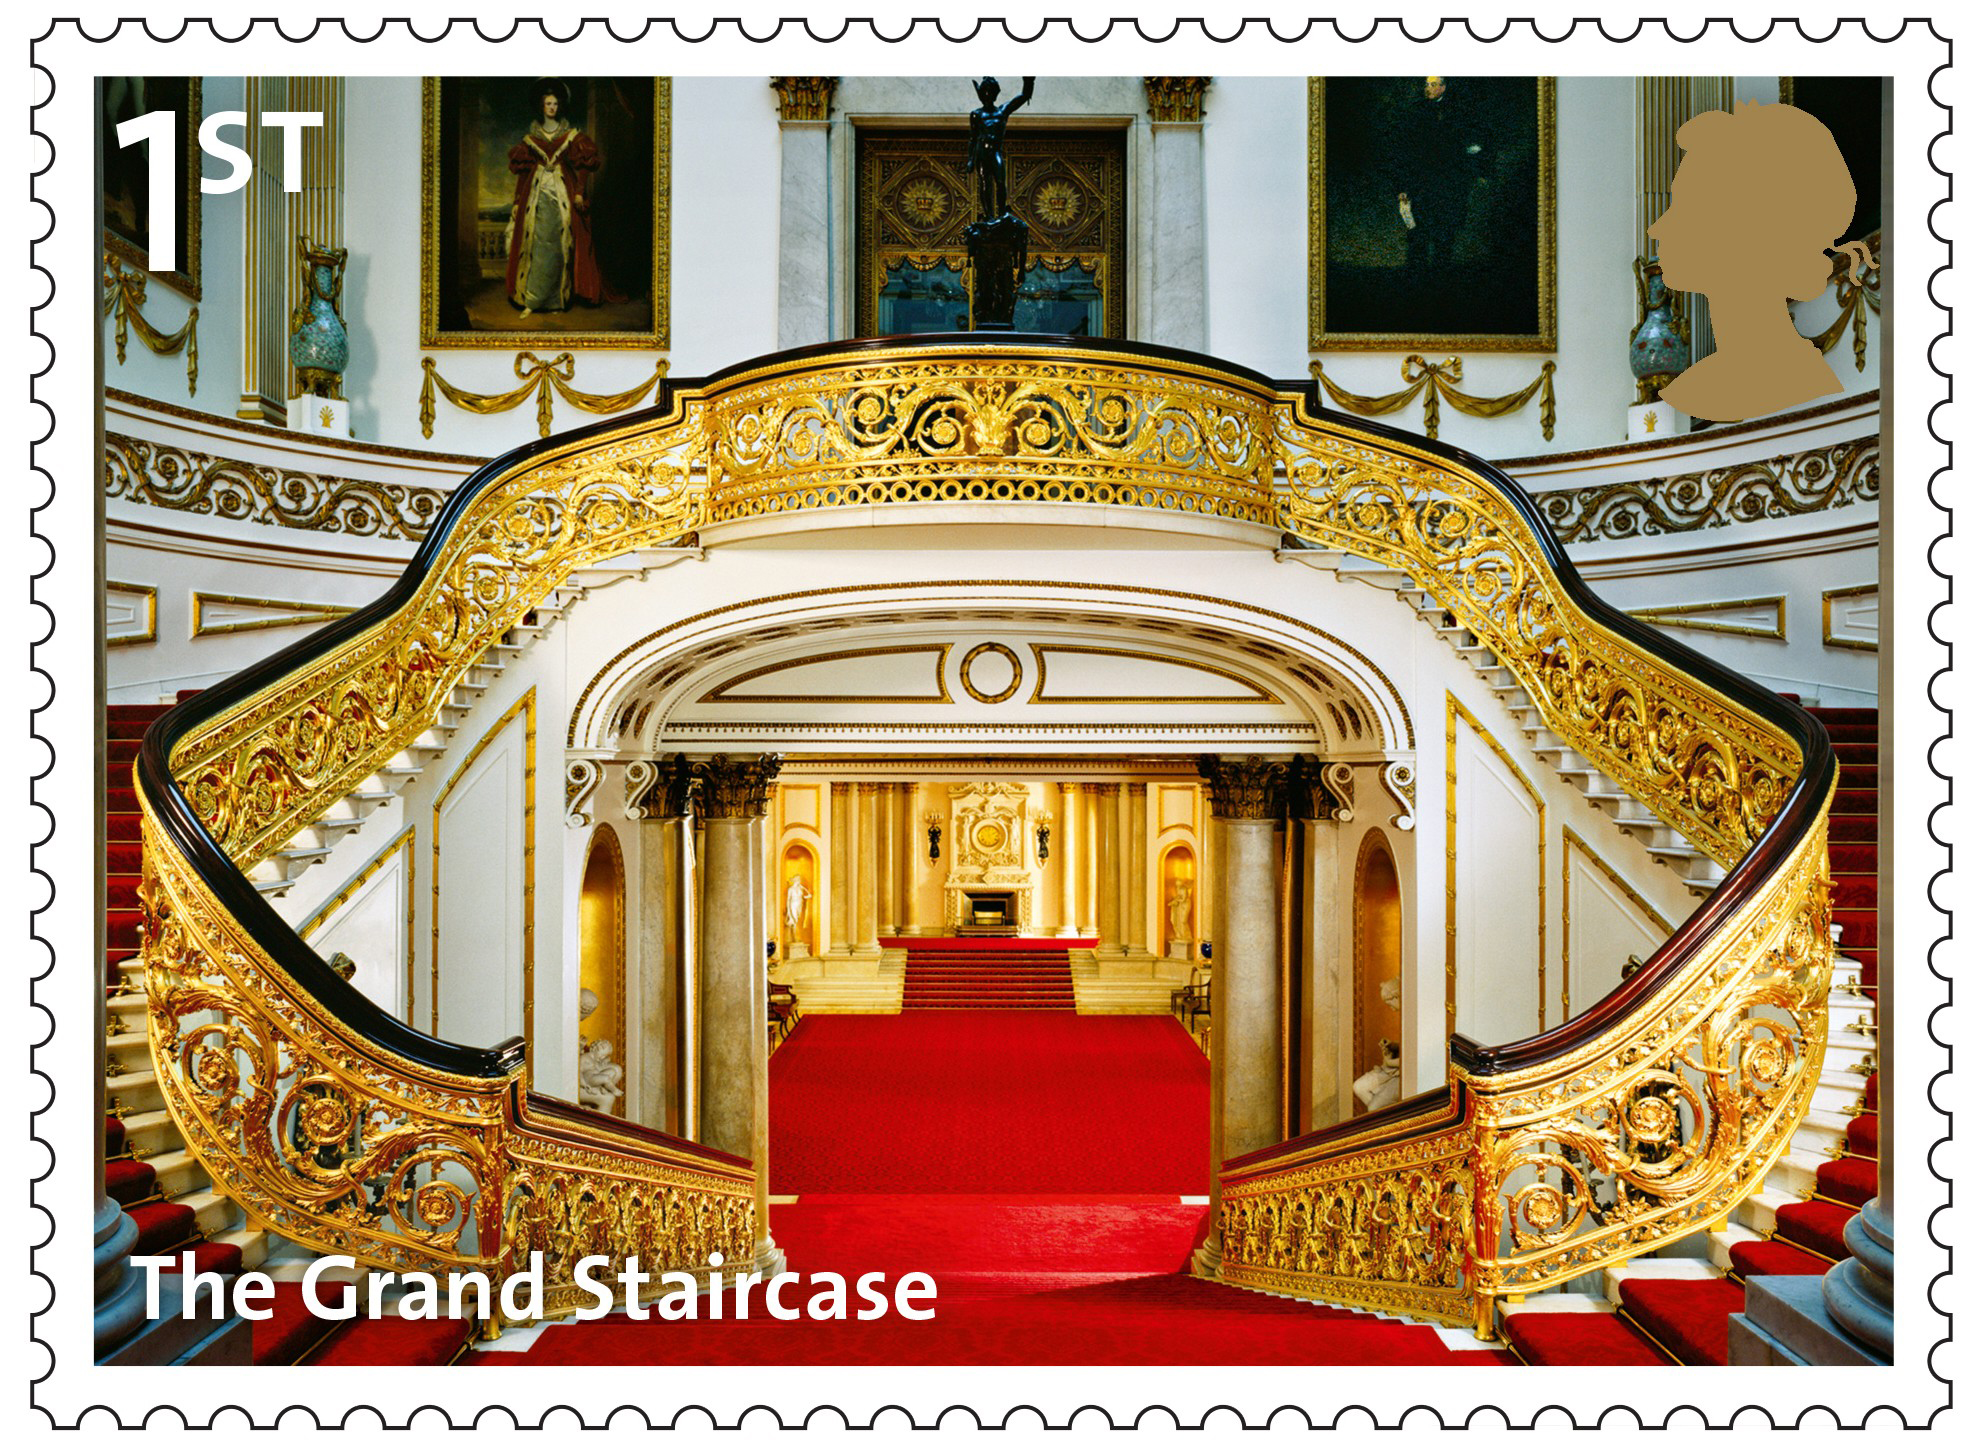 Buckingham Palace 2014 Collect GB Stamps